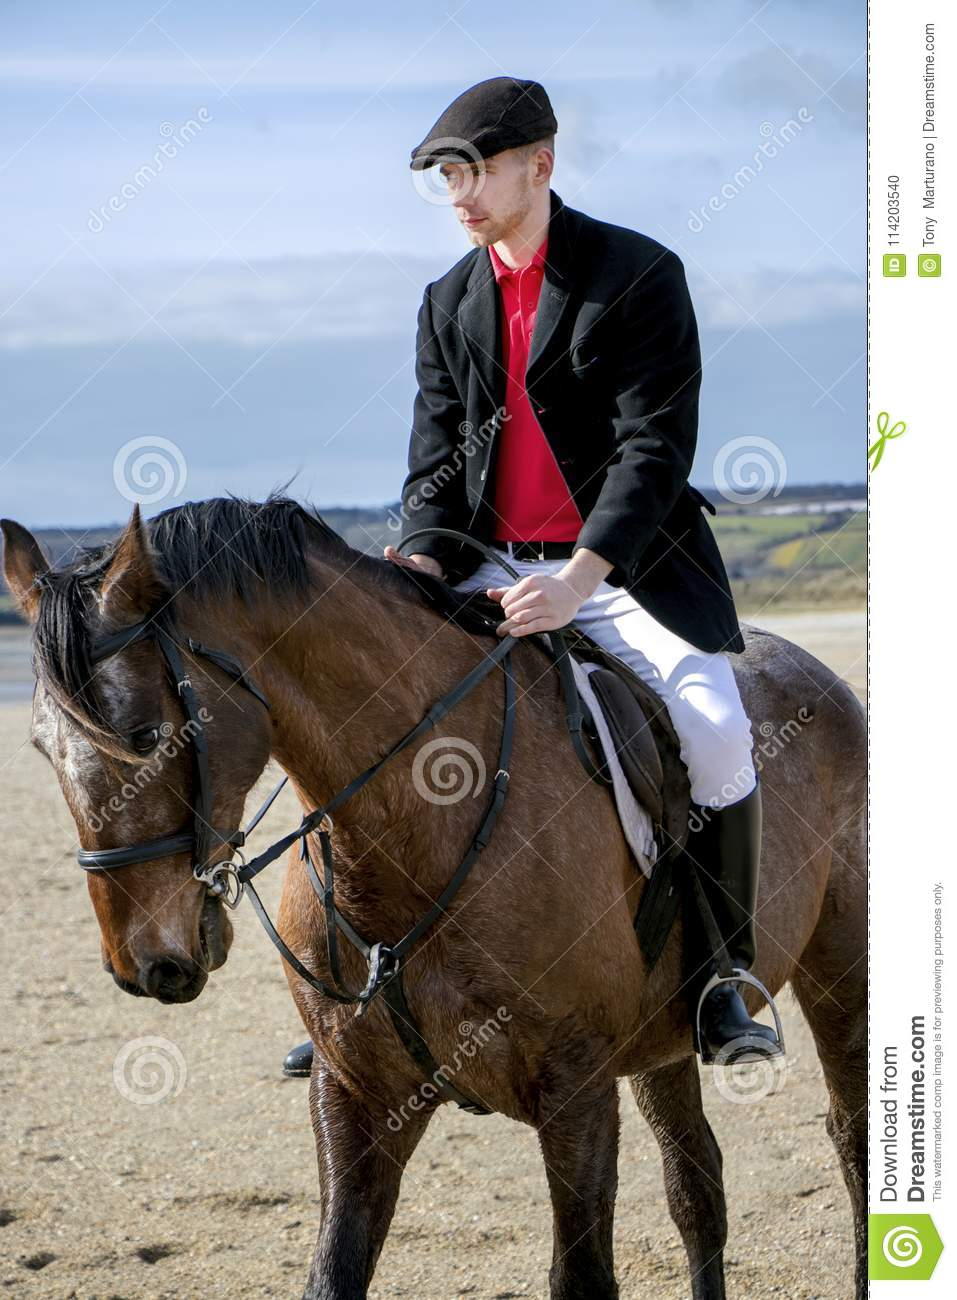 Handsome Male Horse Rider Riding Horse On Beach In Traditional Clothing Stock Photo Image Of Black Coastline 114203540